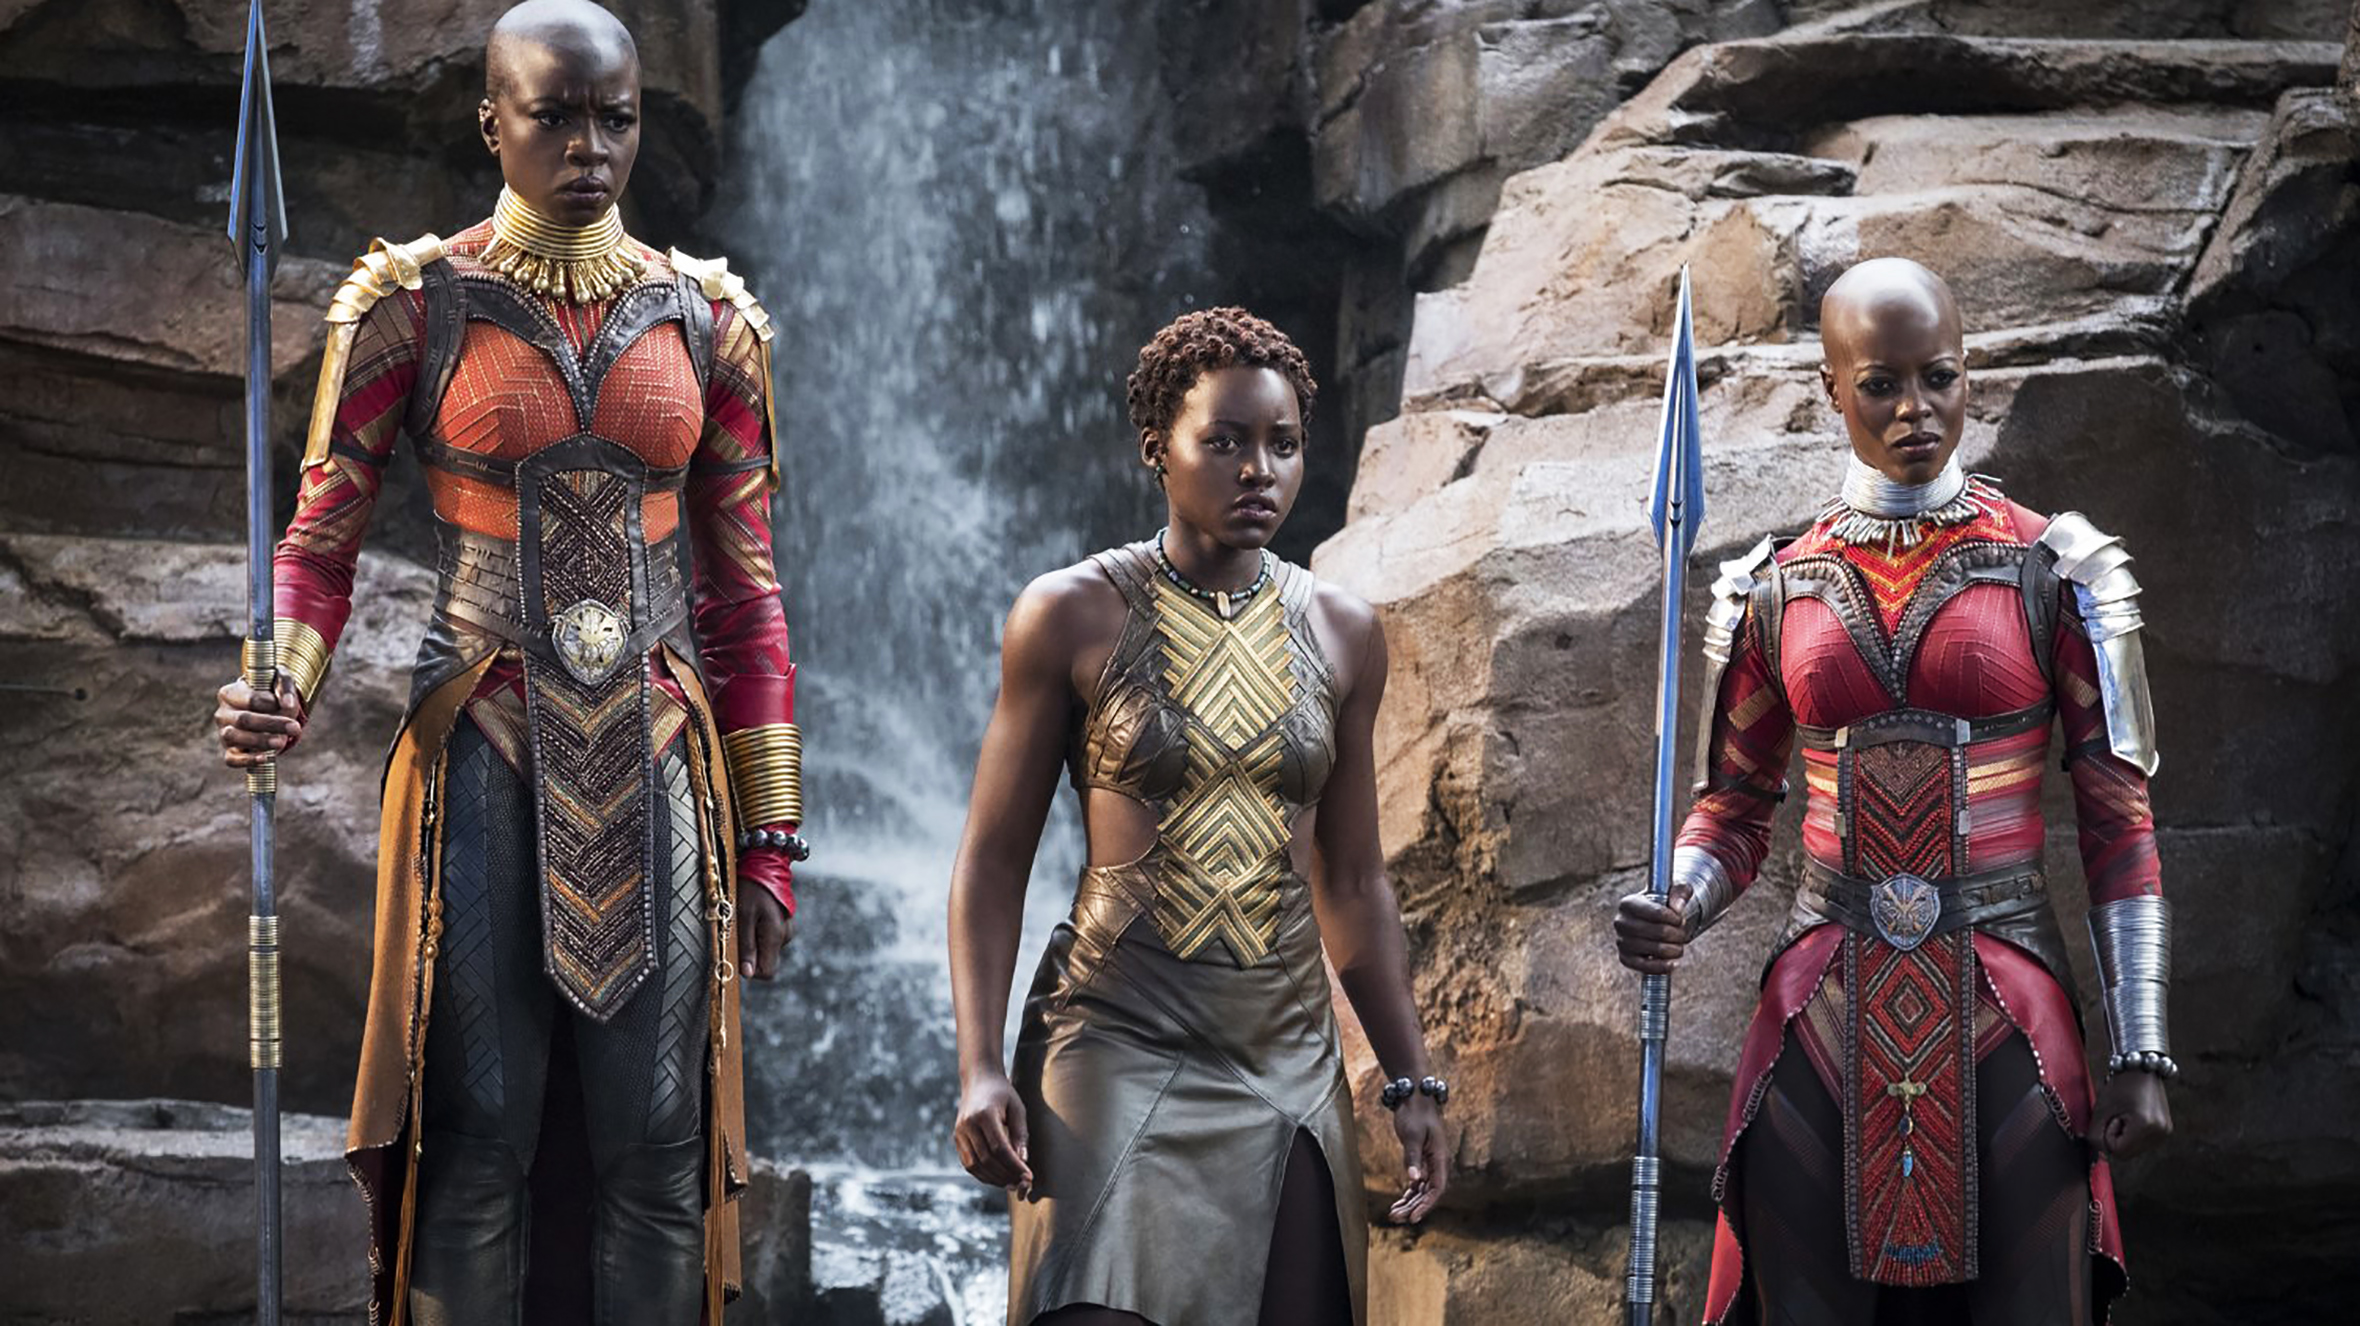 Image from Black Panther movie featuring from the left Danai Gurira, Lupita Nyong'o, and  Marija-Juliette-Abney